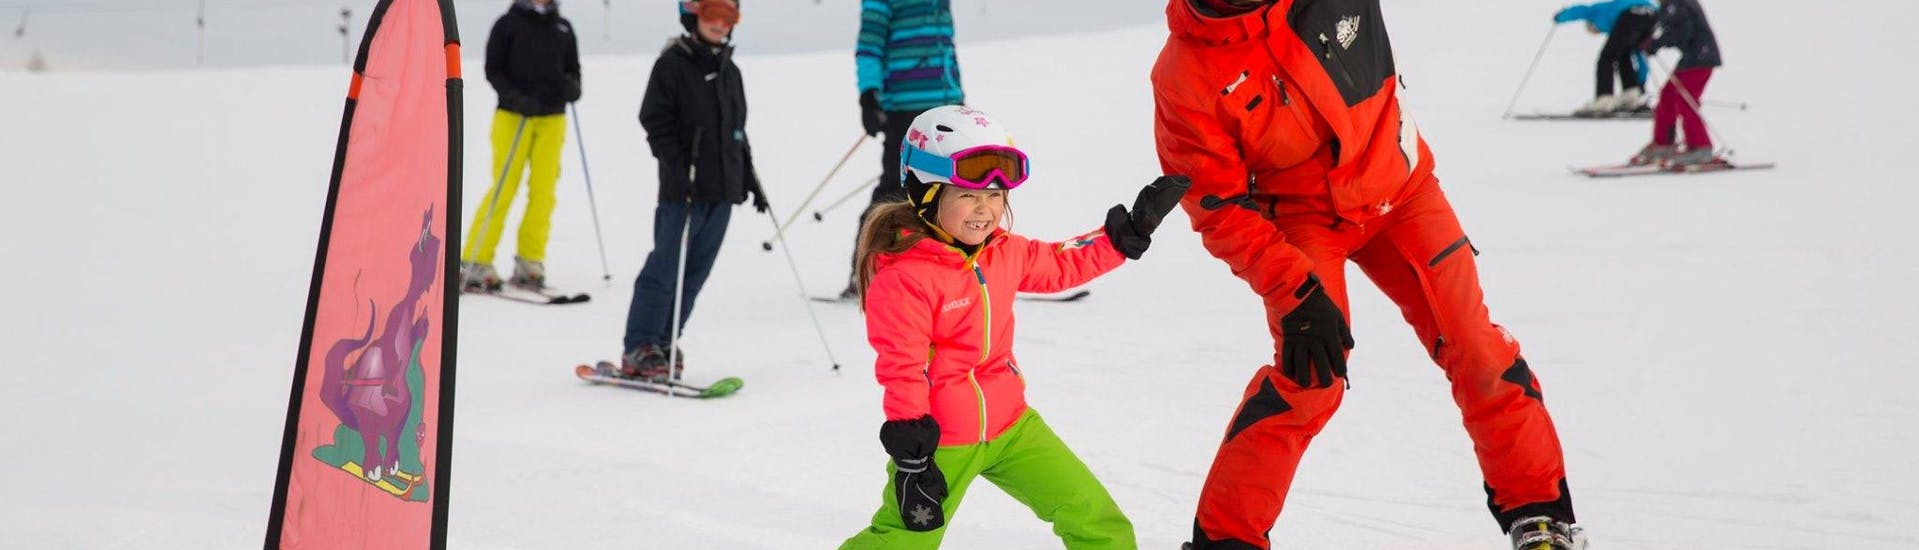 The ski instructor of Skischule Zahmer Kaiser teaches a kid how to ski during the kids ski lesson from 5 years for beginners.